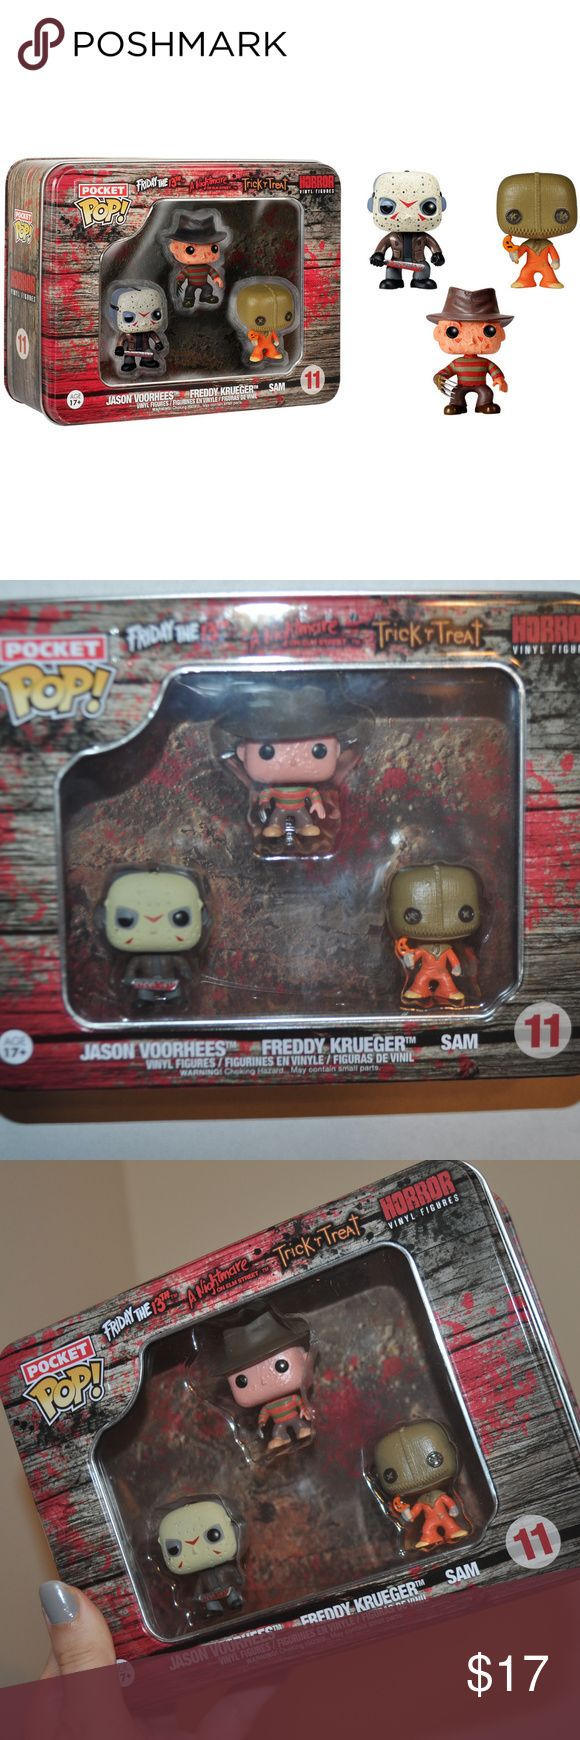 Collectable Pocket POP! Horror 3 Pack BRAND NEW! NEVER OPENED! NO FLAWS!  Pocket Pop! Horror 3 Pack Tin featuring - Jason Voorhees, Freddy Kruger, and Sam  tags: nwt halloween fan girl unisex unique mask disguise monster scary scare spooky spook creep creeper creepy neat rad goth terror little miniature mini small awesome amazing wicked gothic witch dark alternative packs sets set bundle bundles lot incredible three collect collection featured feature holidays presents present holidays…